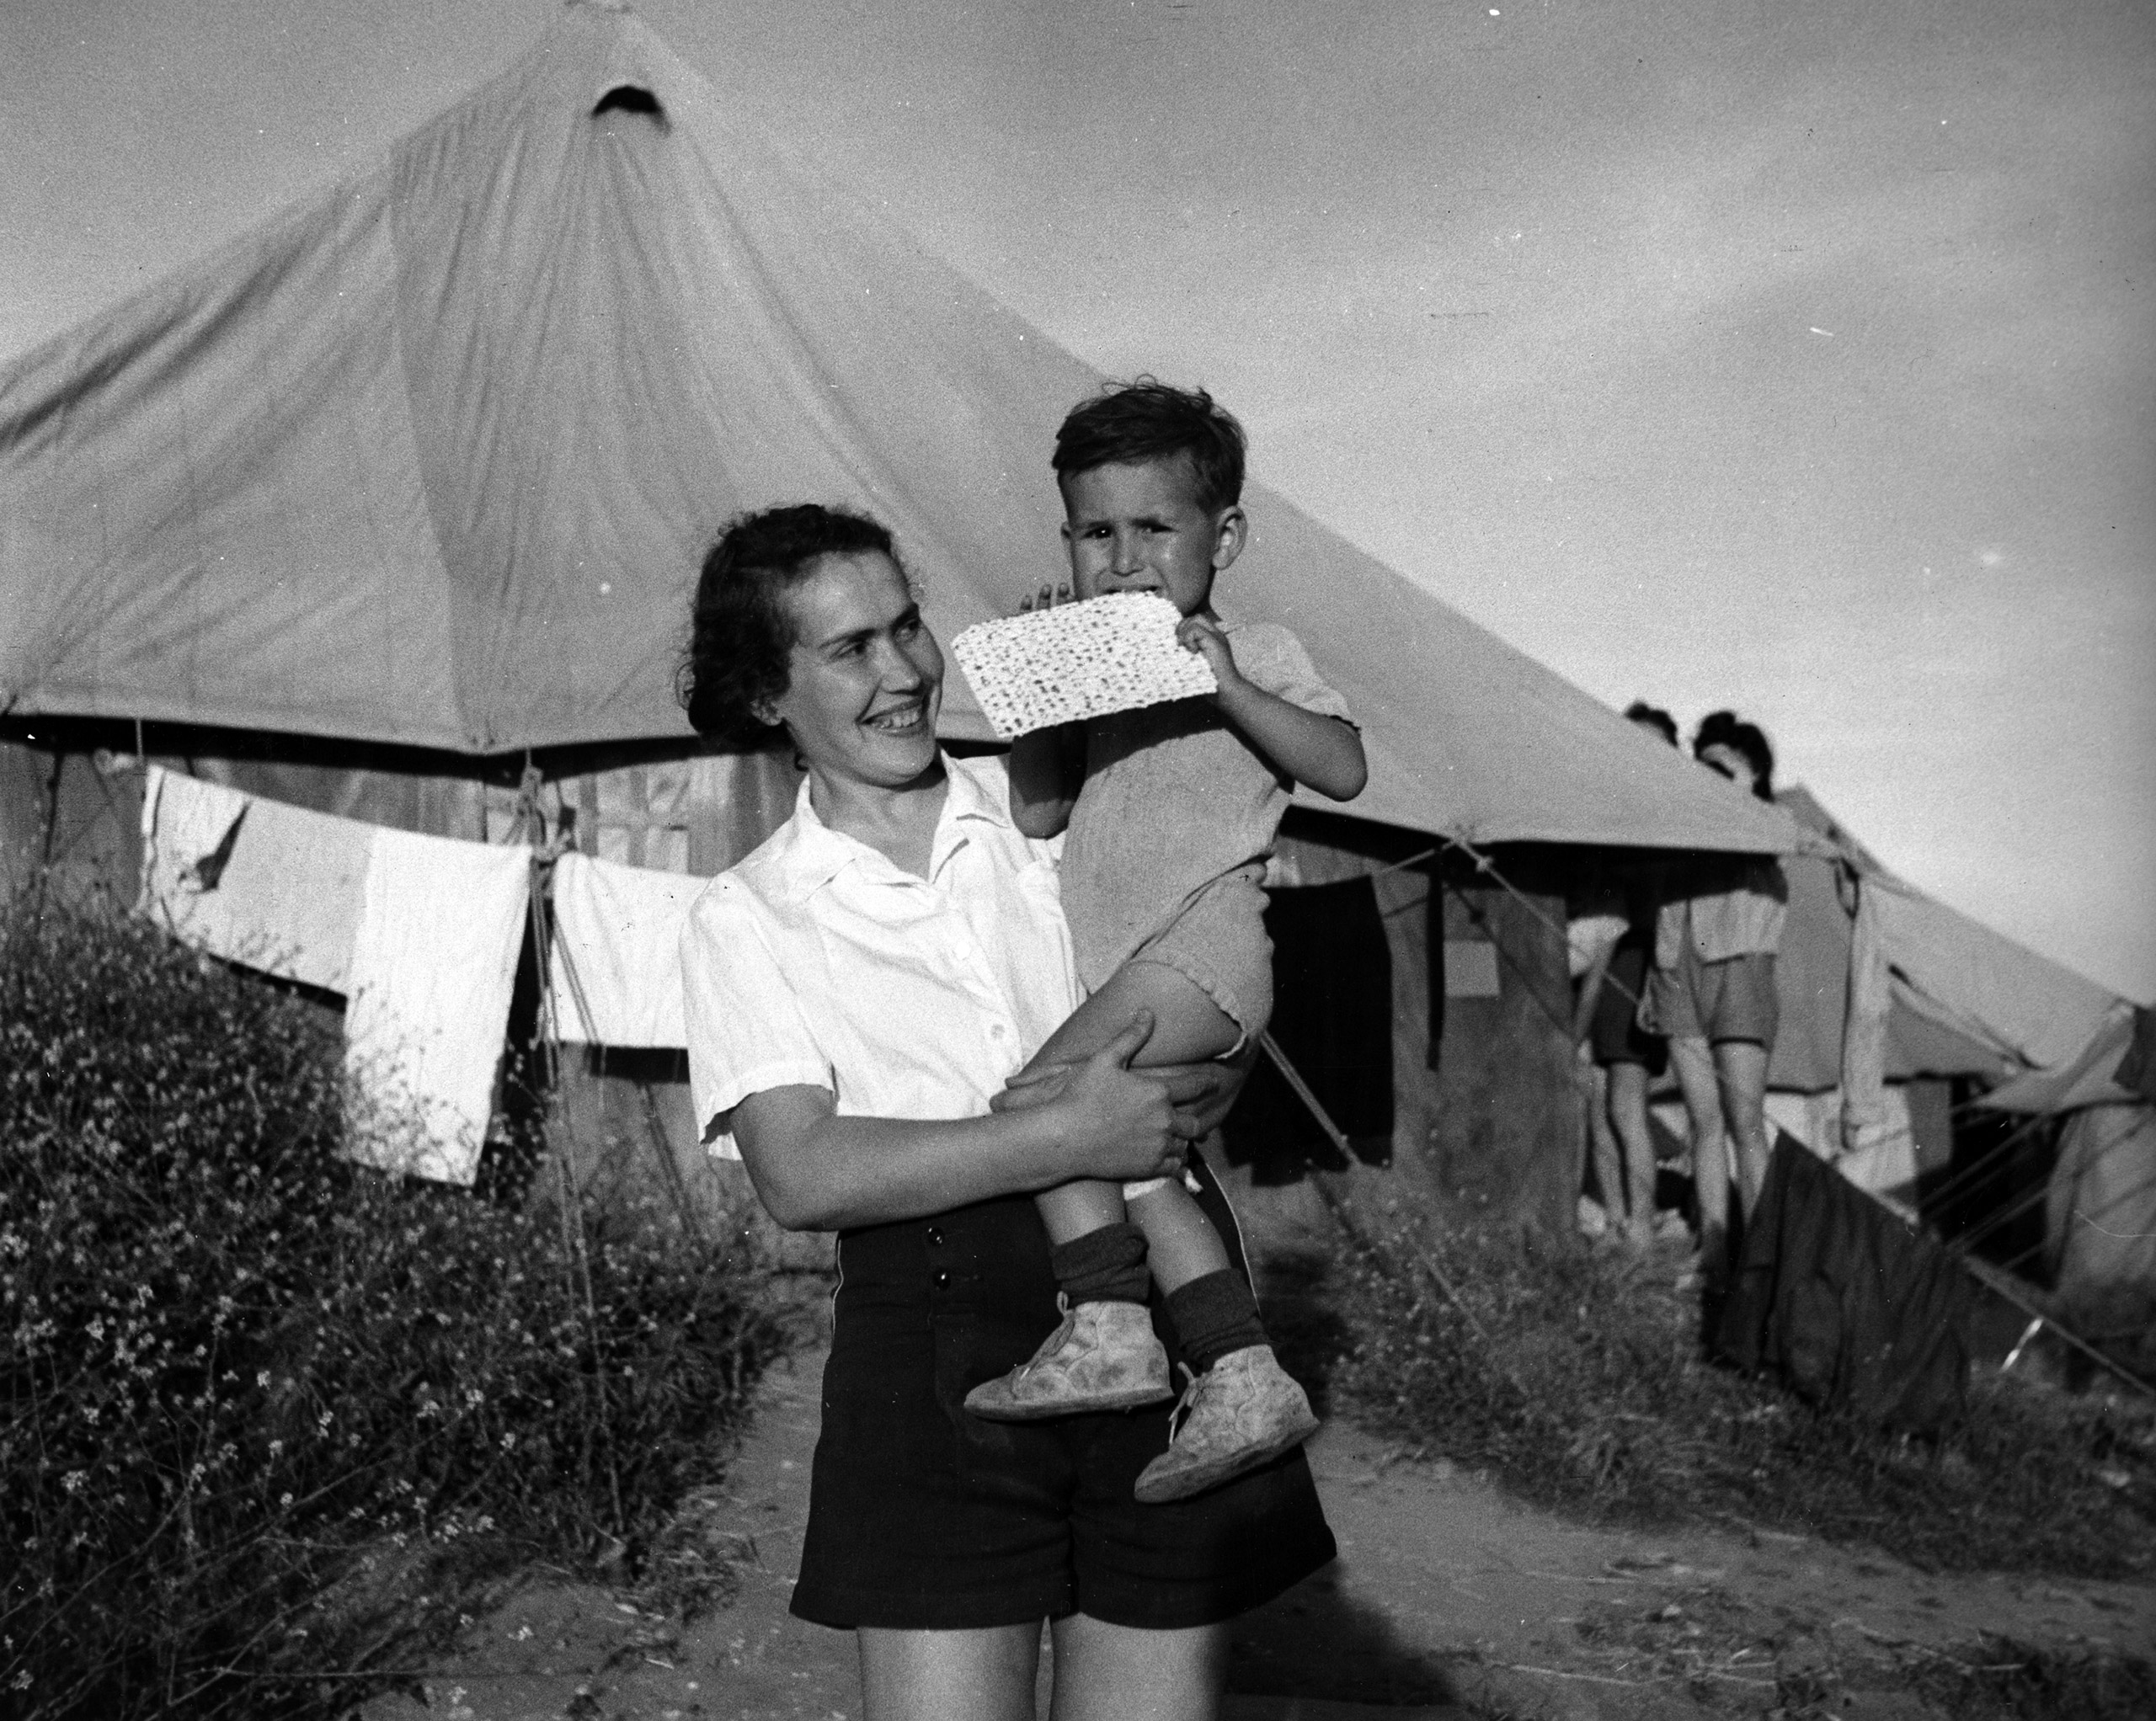 A Jewish refugee from Cracow at the detention camp holds her 2-year-old son while he eats Passover matzo. Holiday supplies were furnished by JDC. Caraolos, Cyprus. c. 1947. Photographer: Al Taylor.